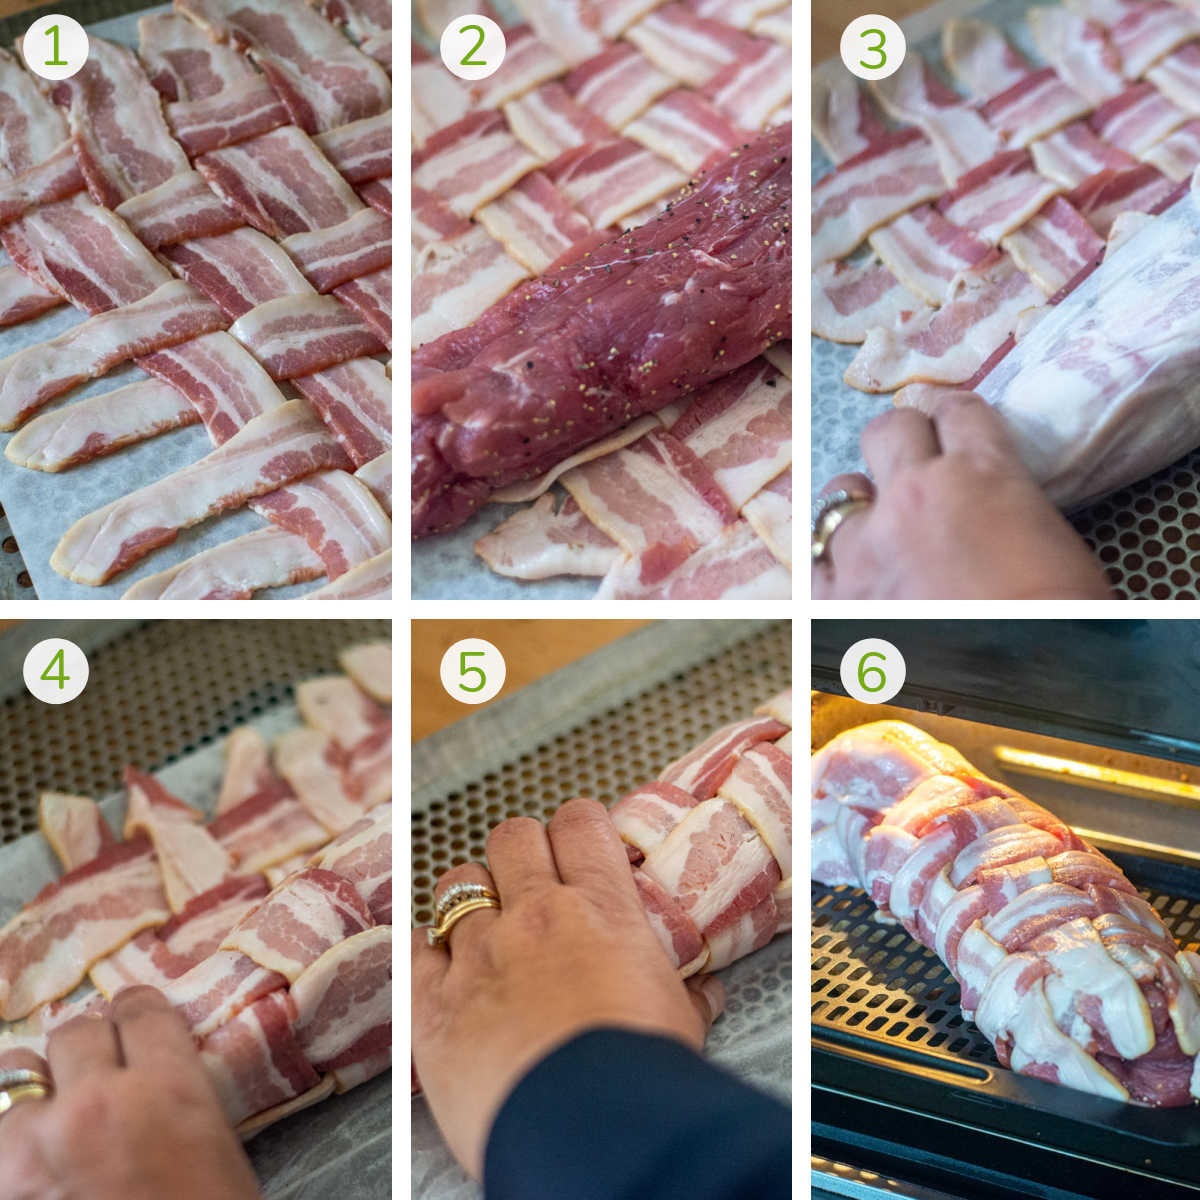 six process shots to show how to weave the bacon, add the pork tenderloin, wrap it and place on the air fryer.